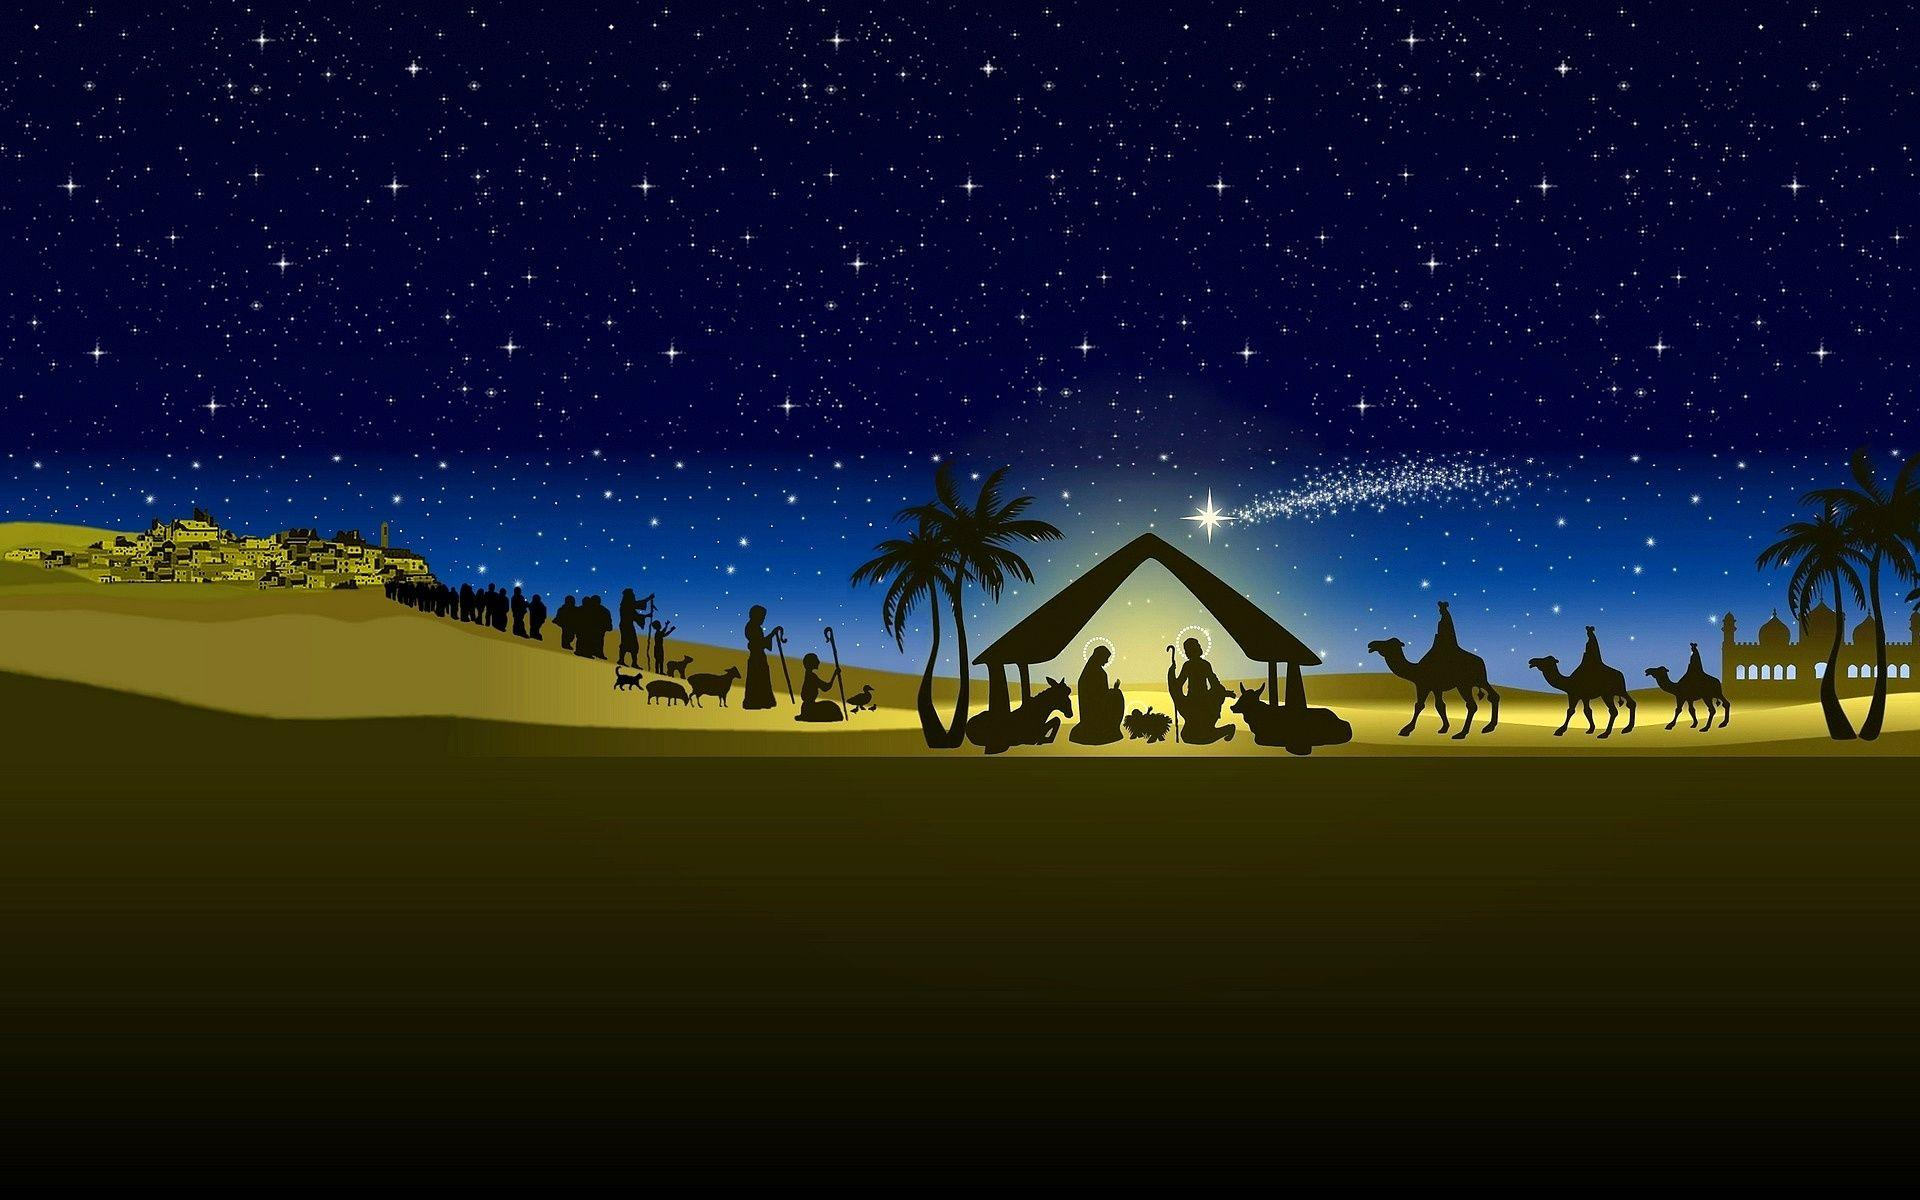 Christmas nativity wallpapers wallpaper cave for Christmas pictures for facebook wall